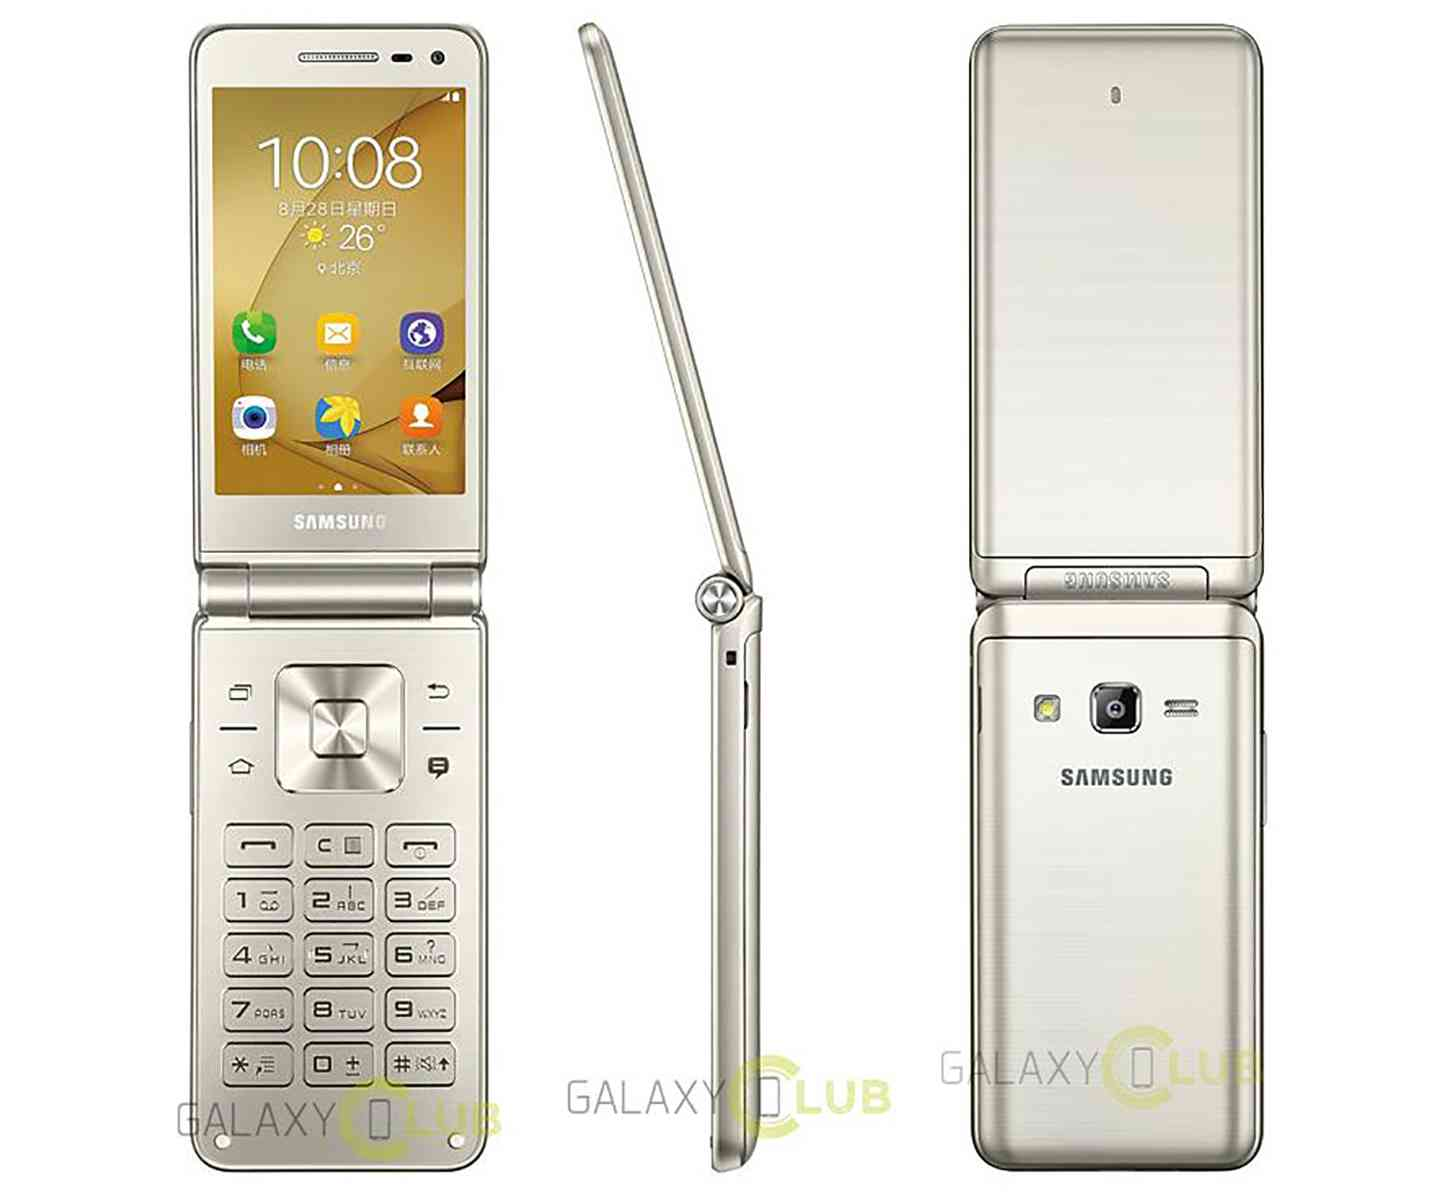 Samsung Galaxy Folder 2 Android flip phone images